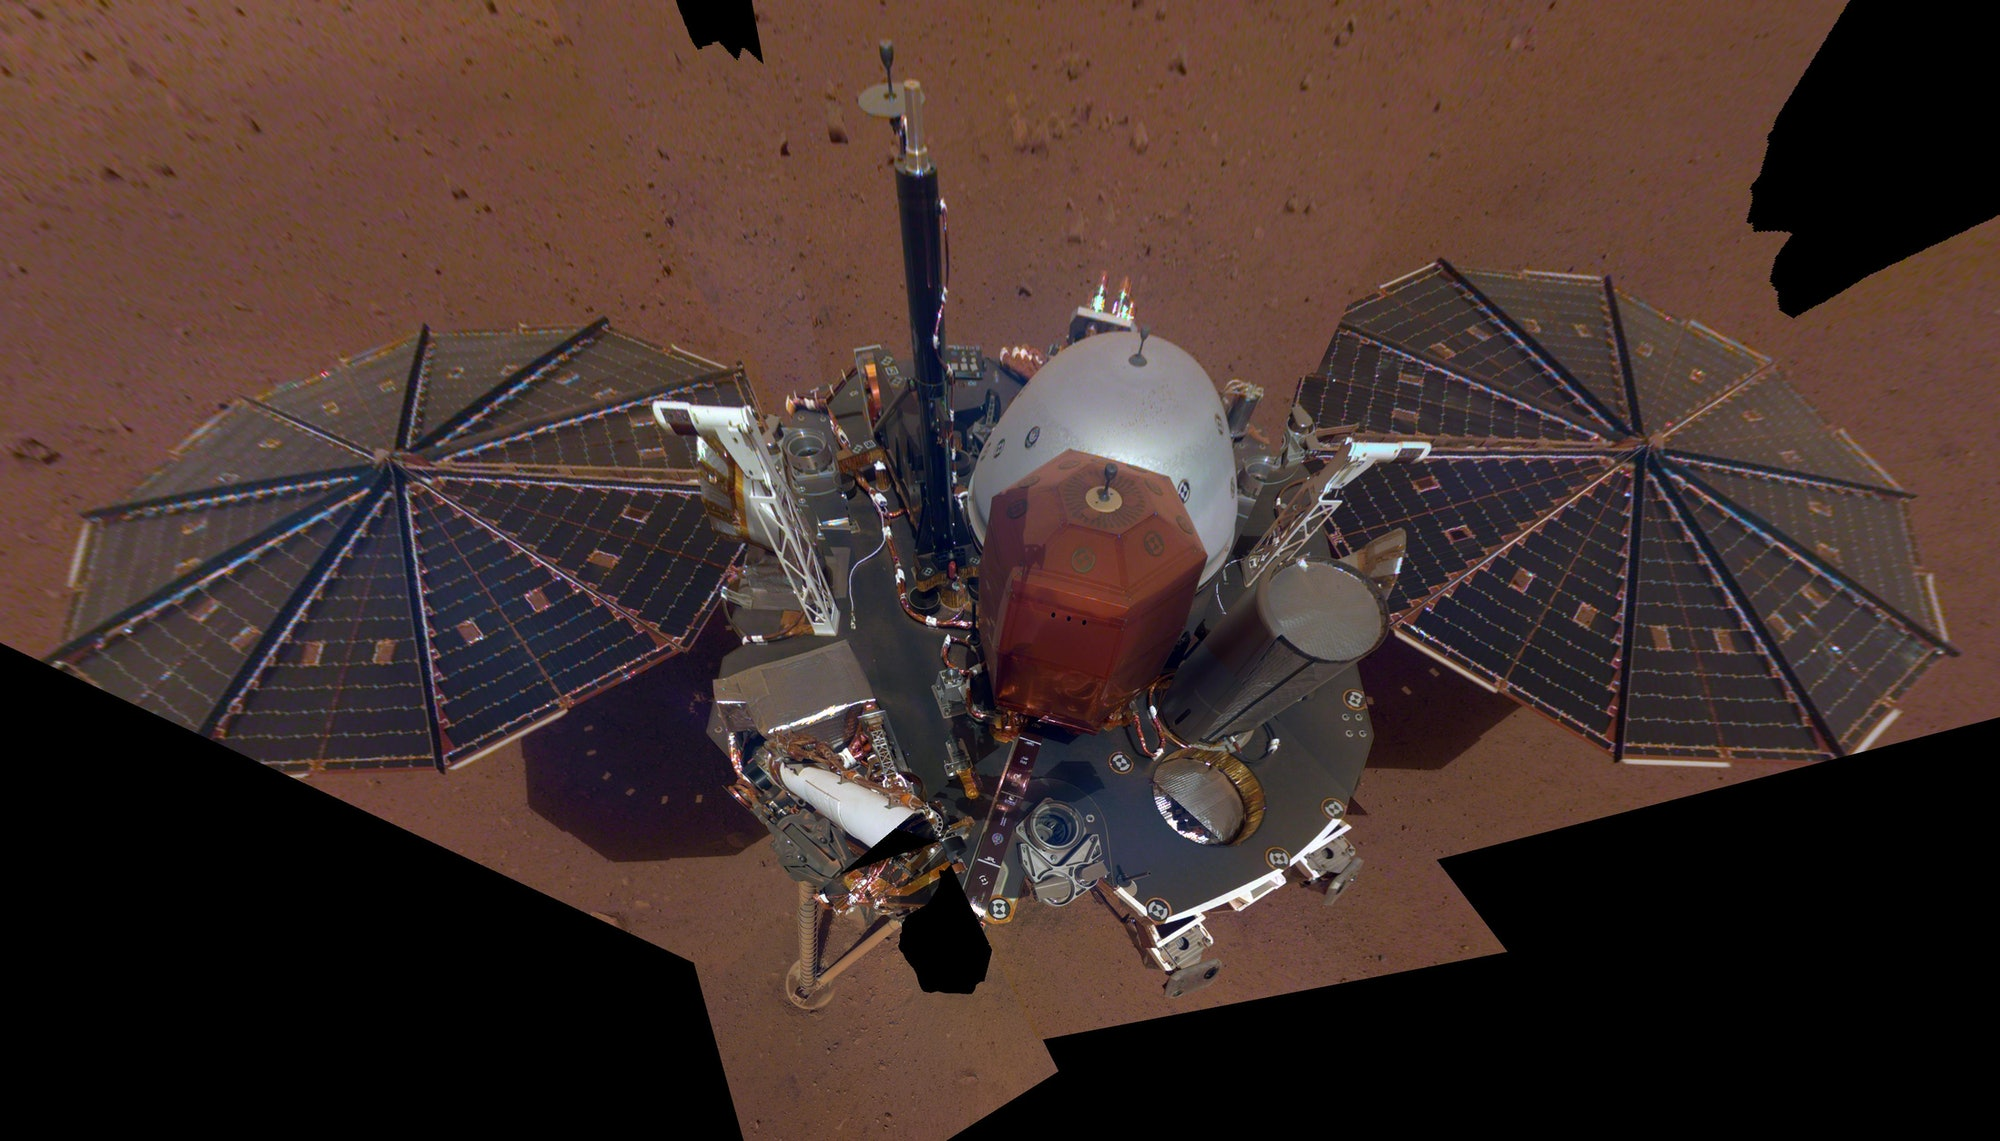 This is NASA InSight's first full selfie on Mars. It displays the lander's solar panels and deck. On top of the deck are its science instruments, weather sensor booms and UHF antenna. The selfie was taken on Dec. 6